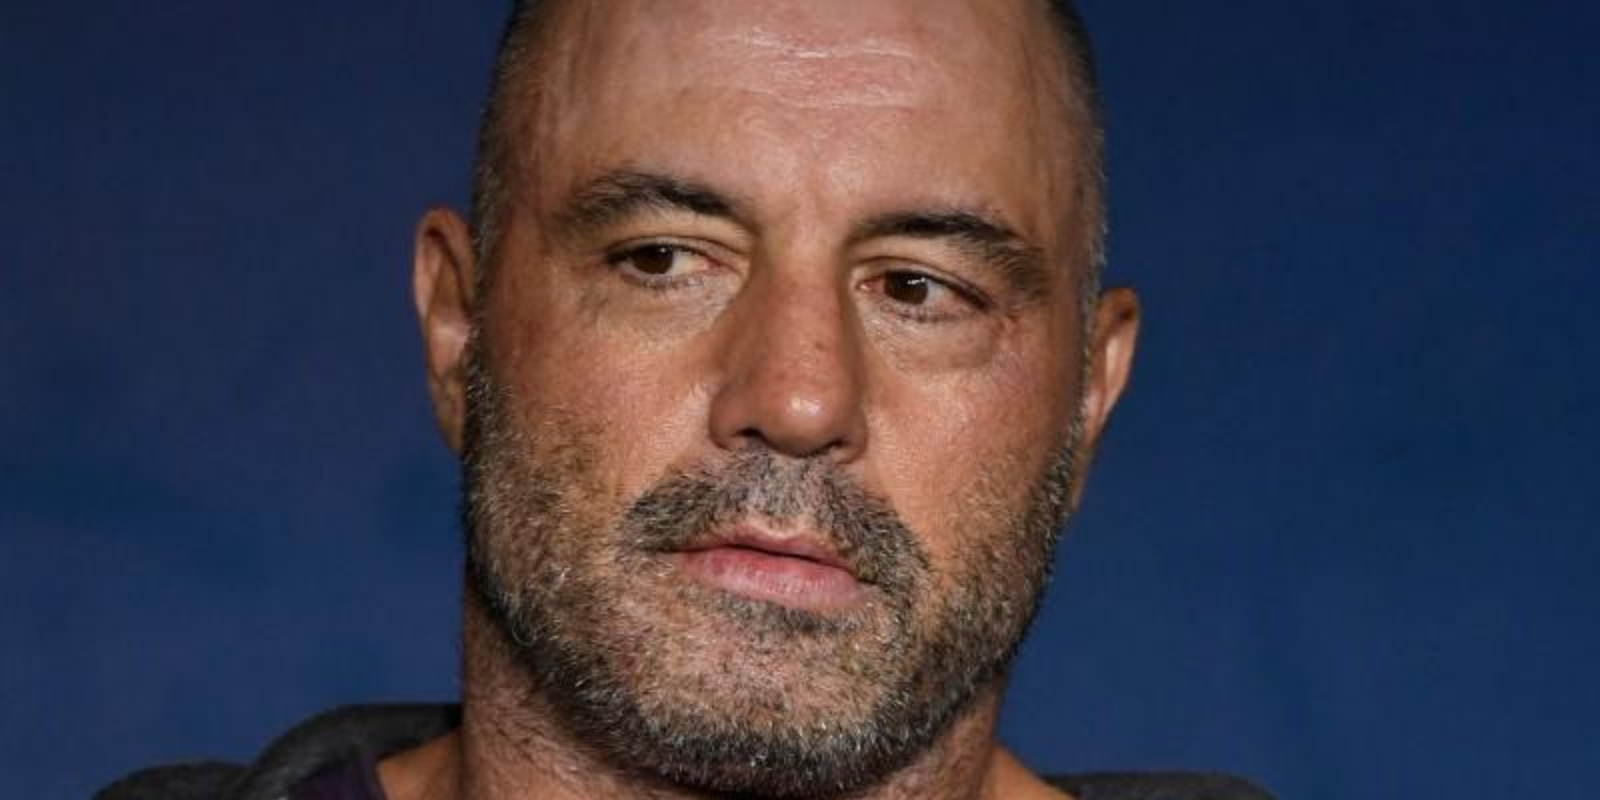 Spotify low-key censors controversial episodes of Joe Rogan's podcast